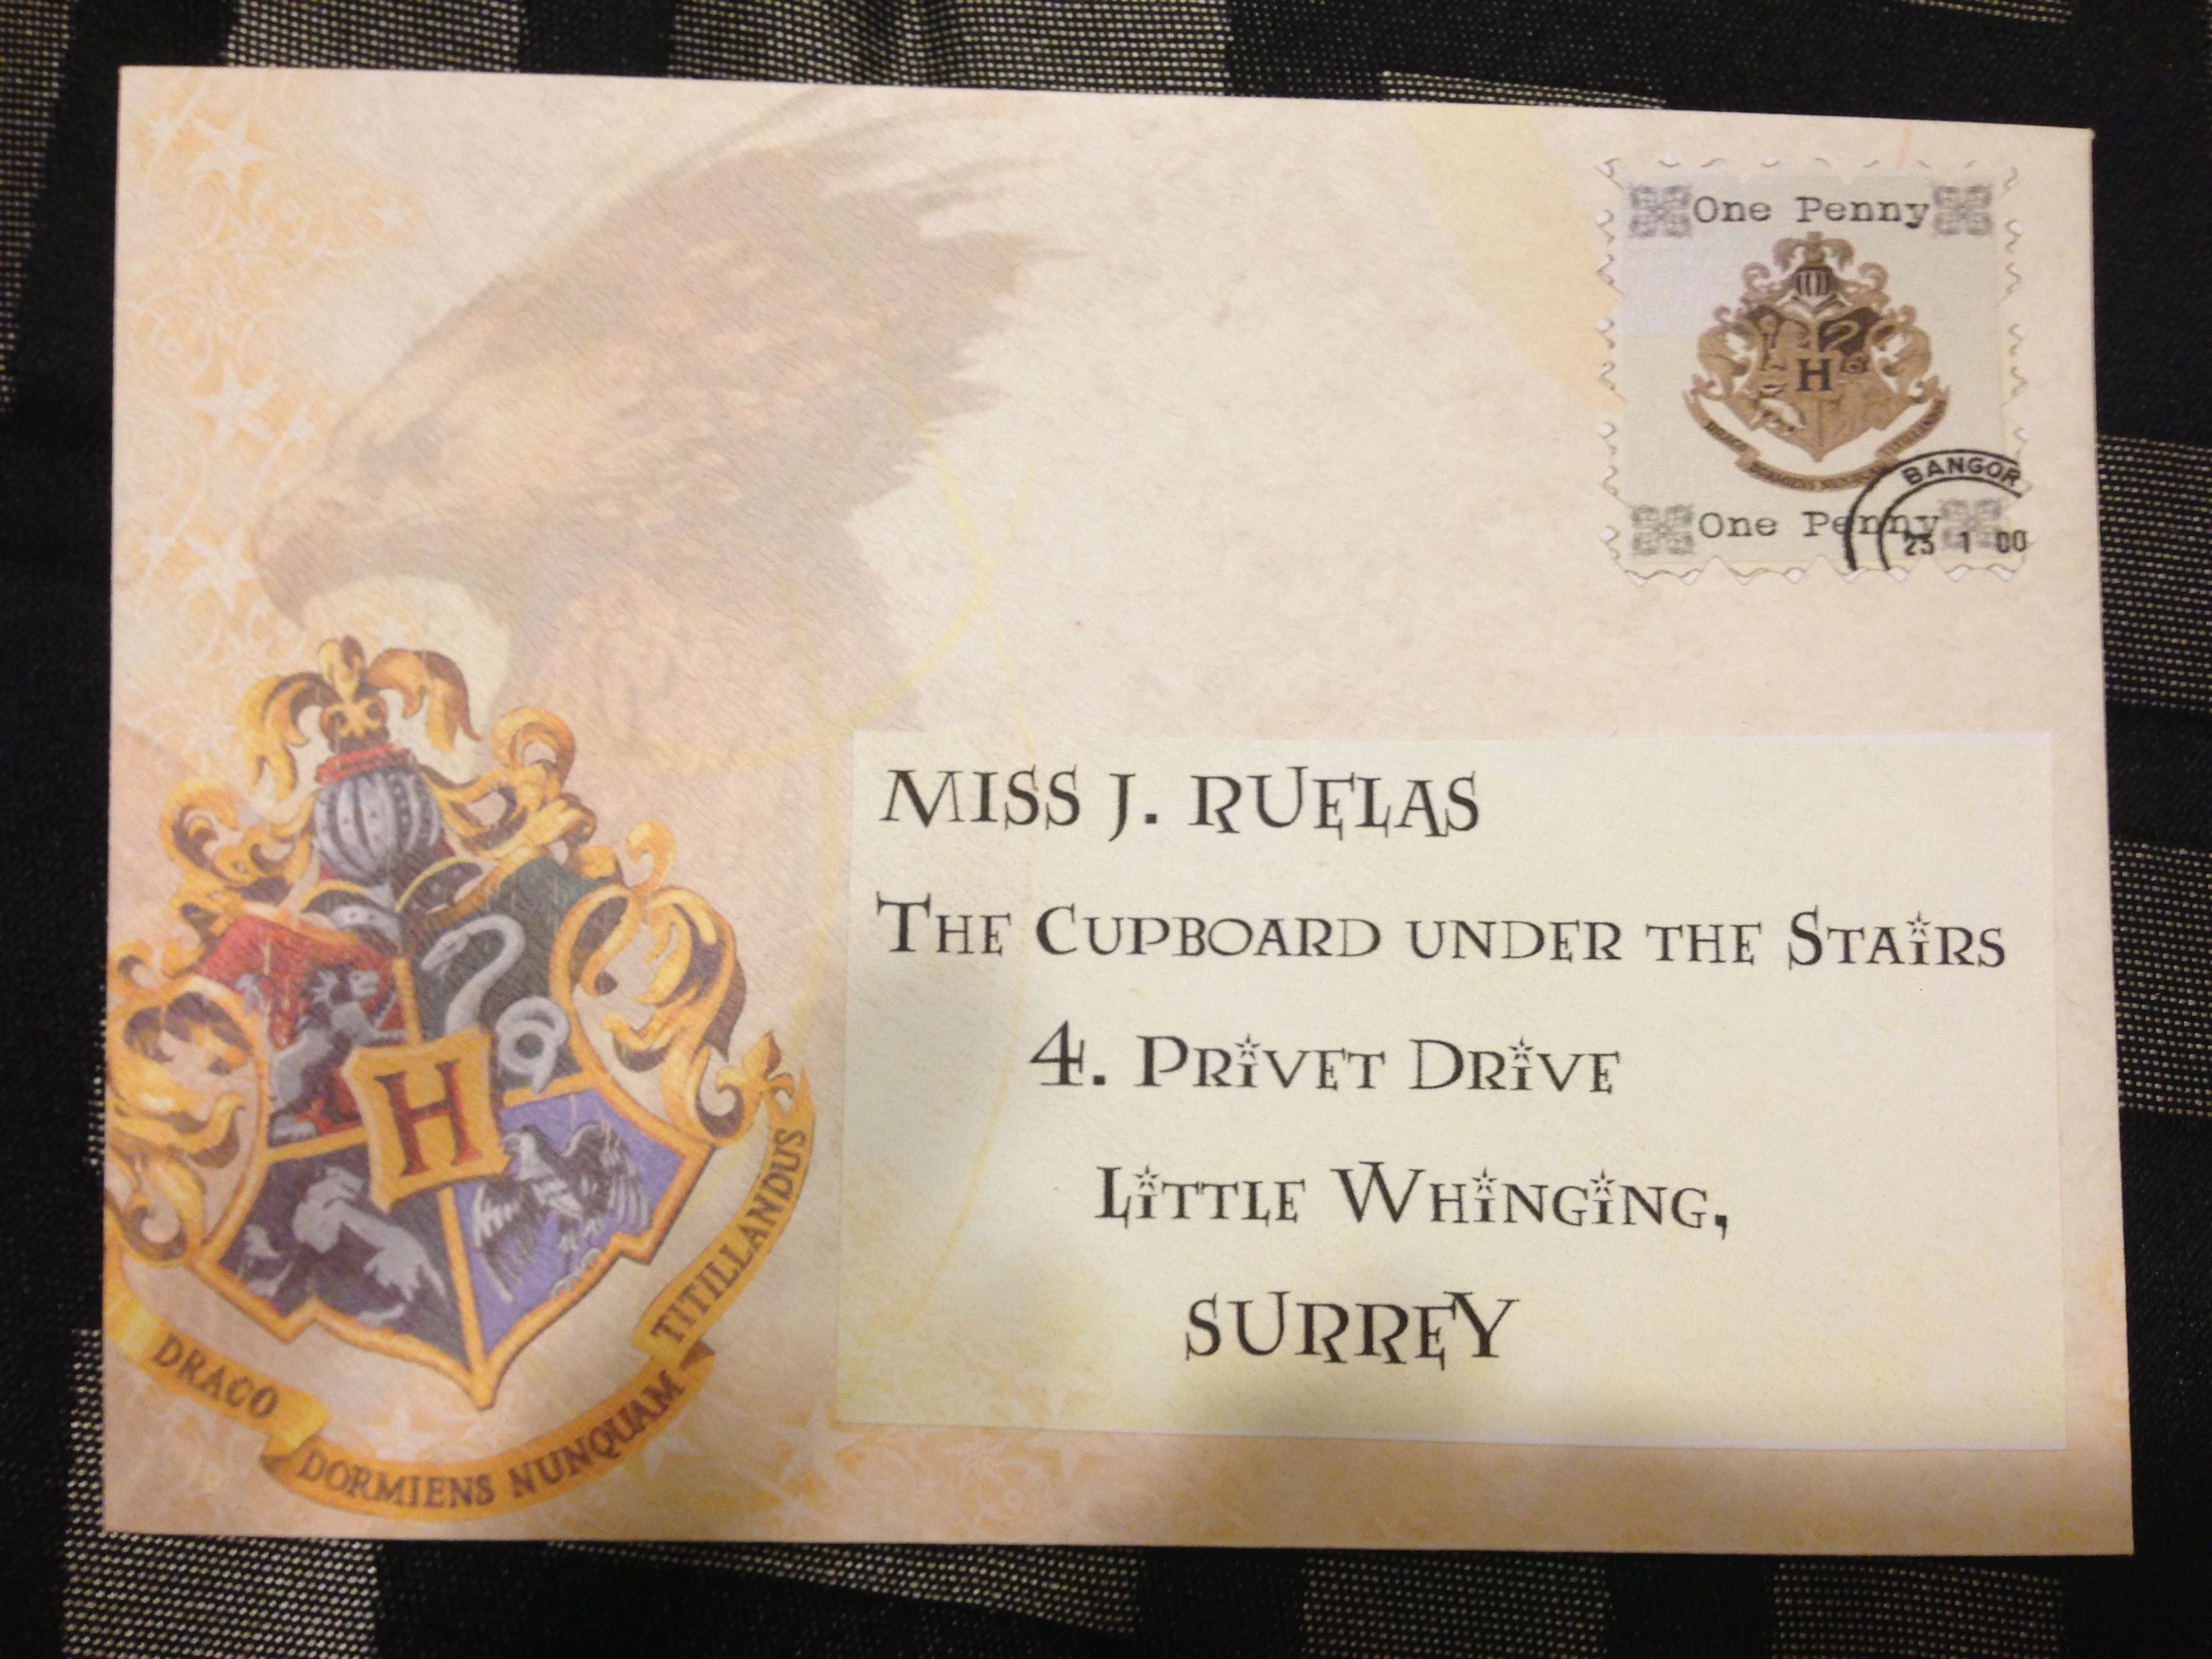 This Is The Envelope I Used For The Harry Potter Invitation Letter